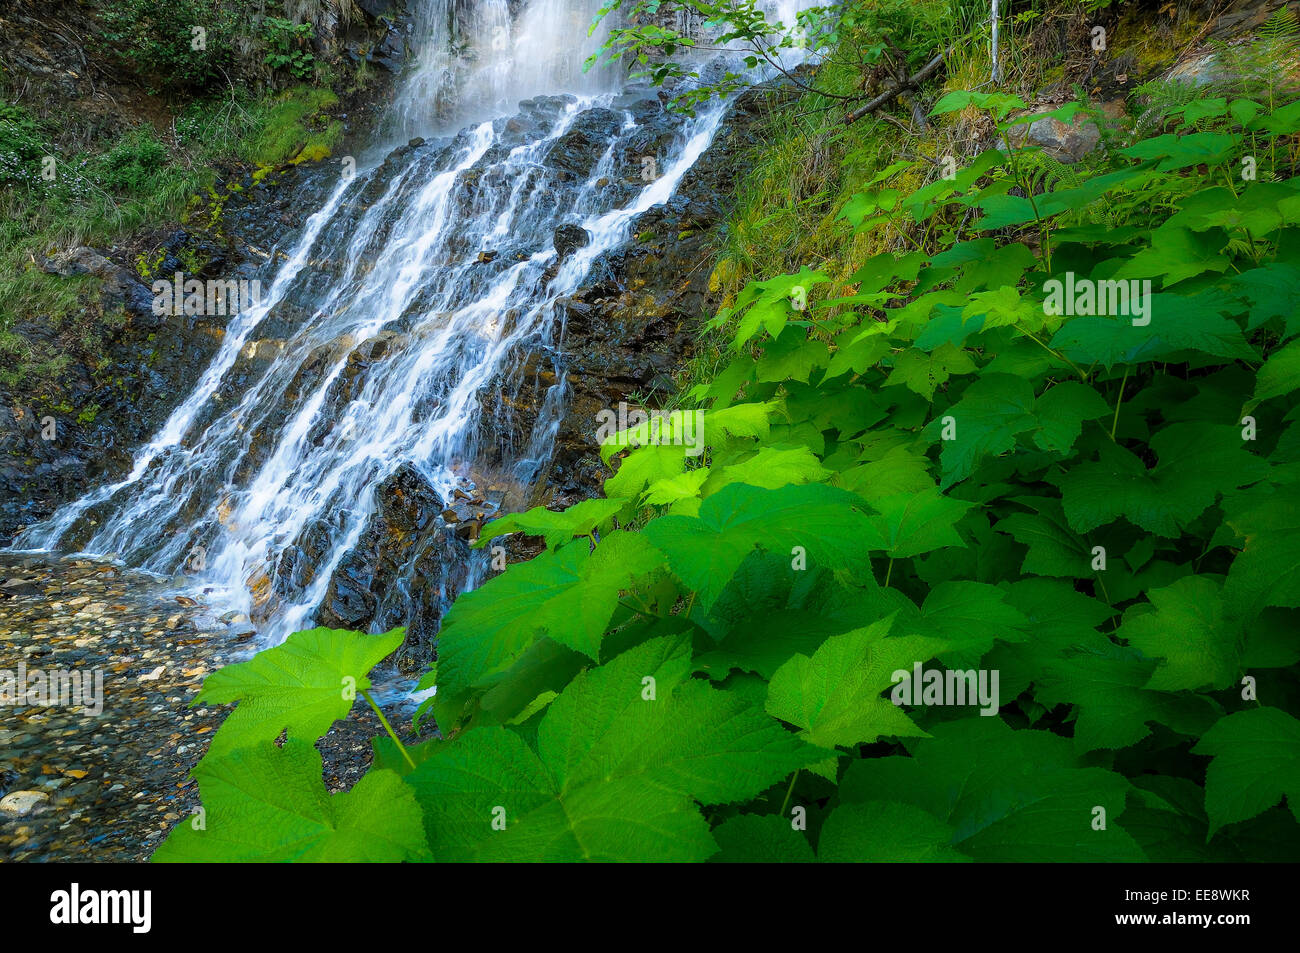 Ione Creek Falls, Selkirk Mountains, British Columbia, Canada - Stock Image